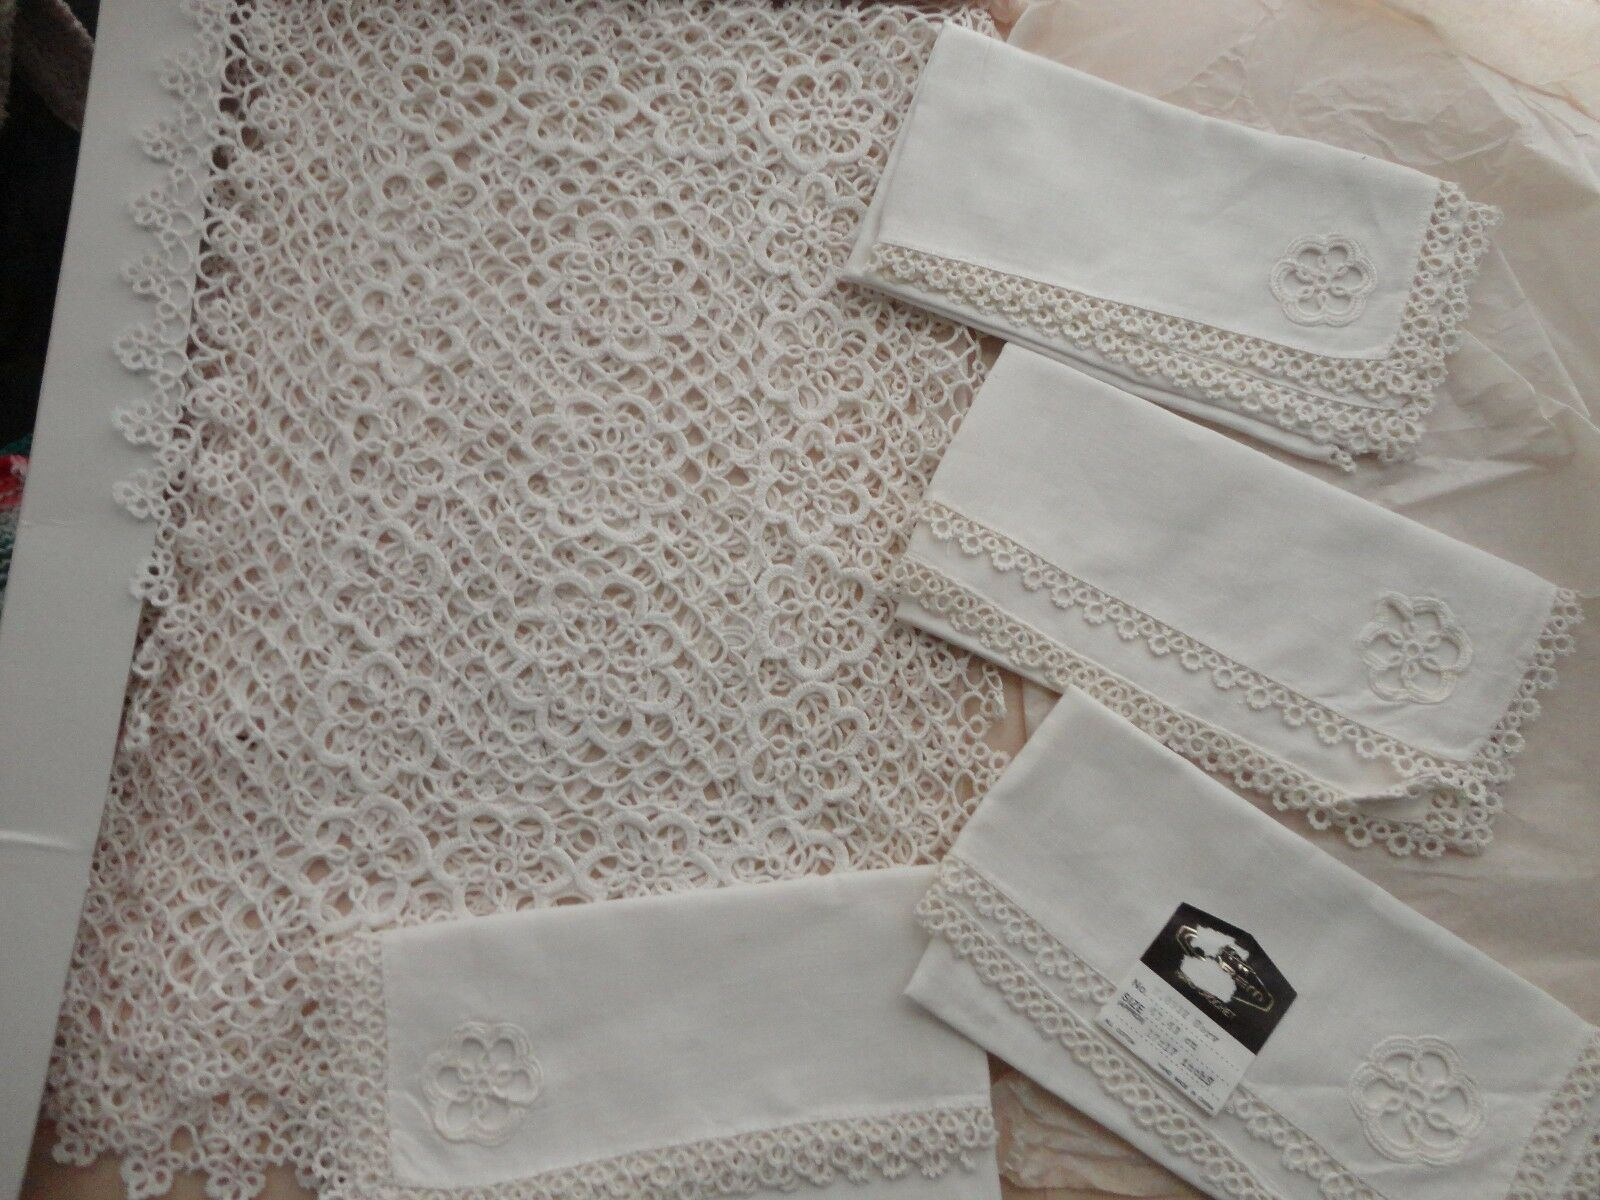 Vintage main Tatting crochet dentelle Ensemble 8 Pièces 100% coton 4 Napperon & 4 Serviette